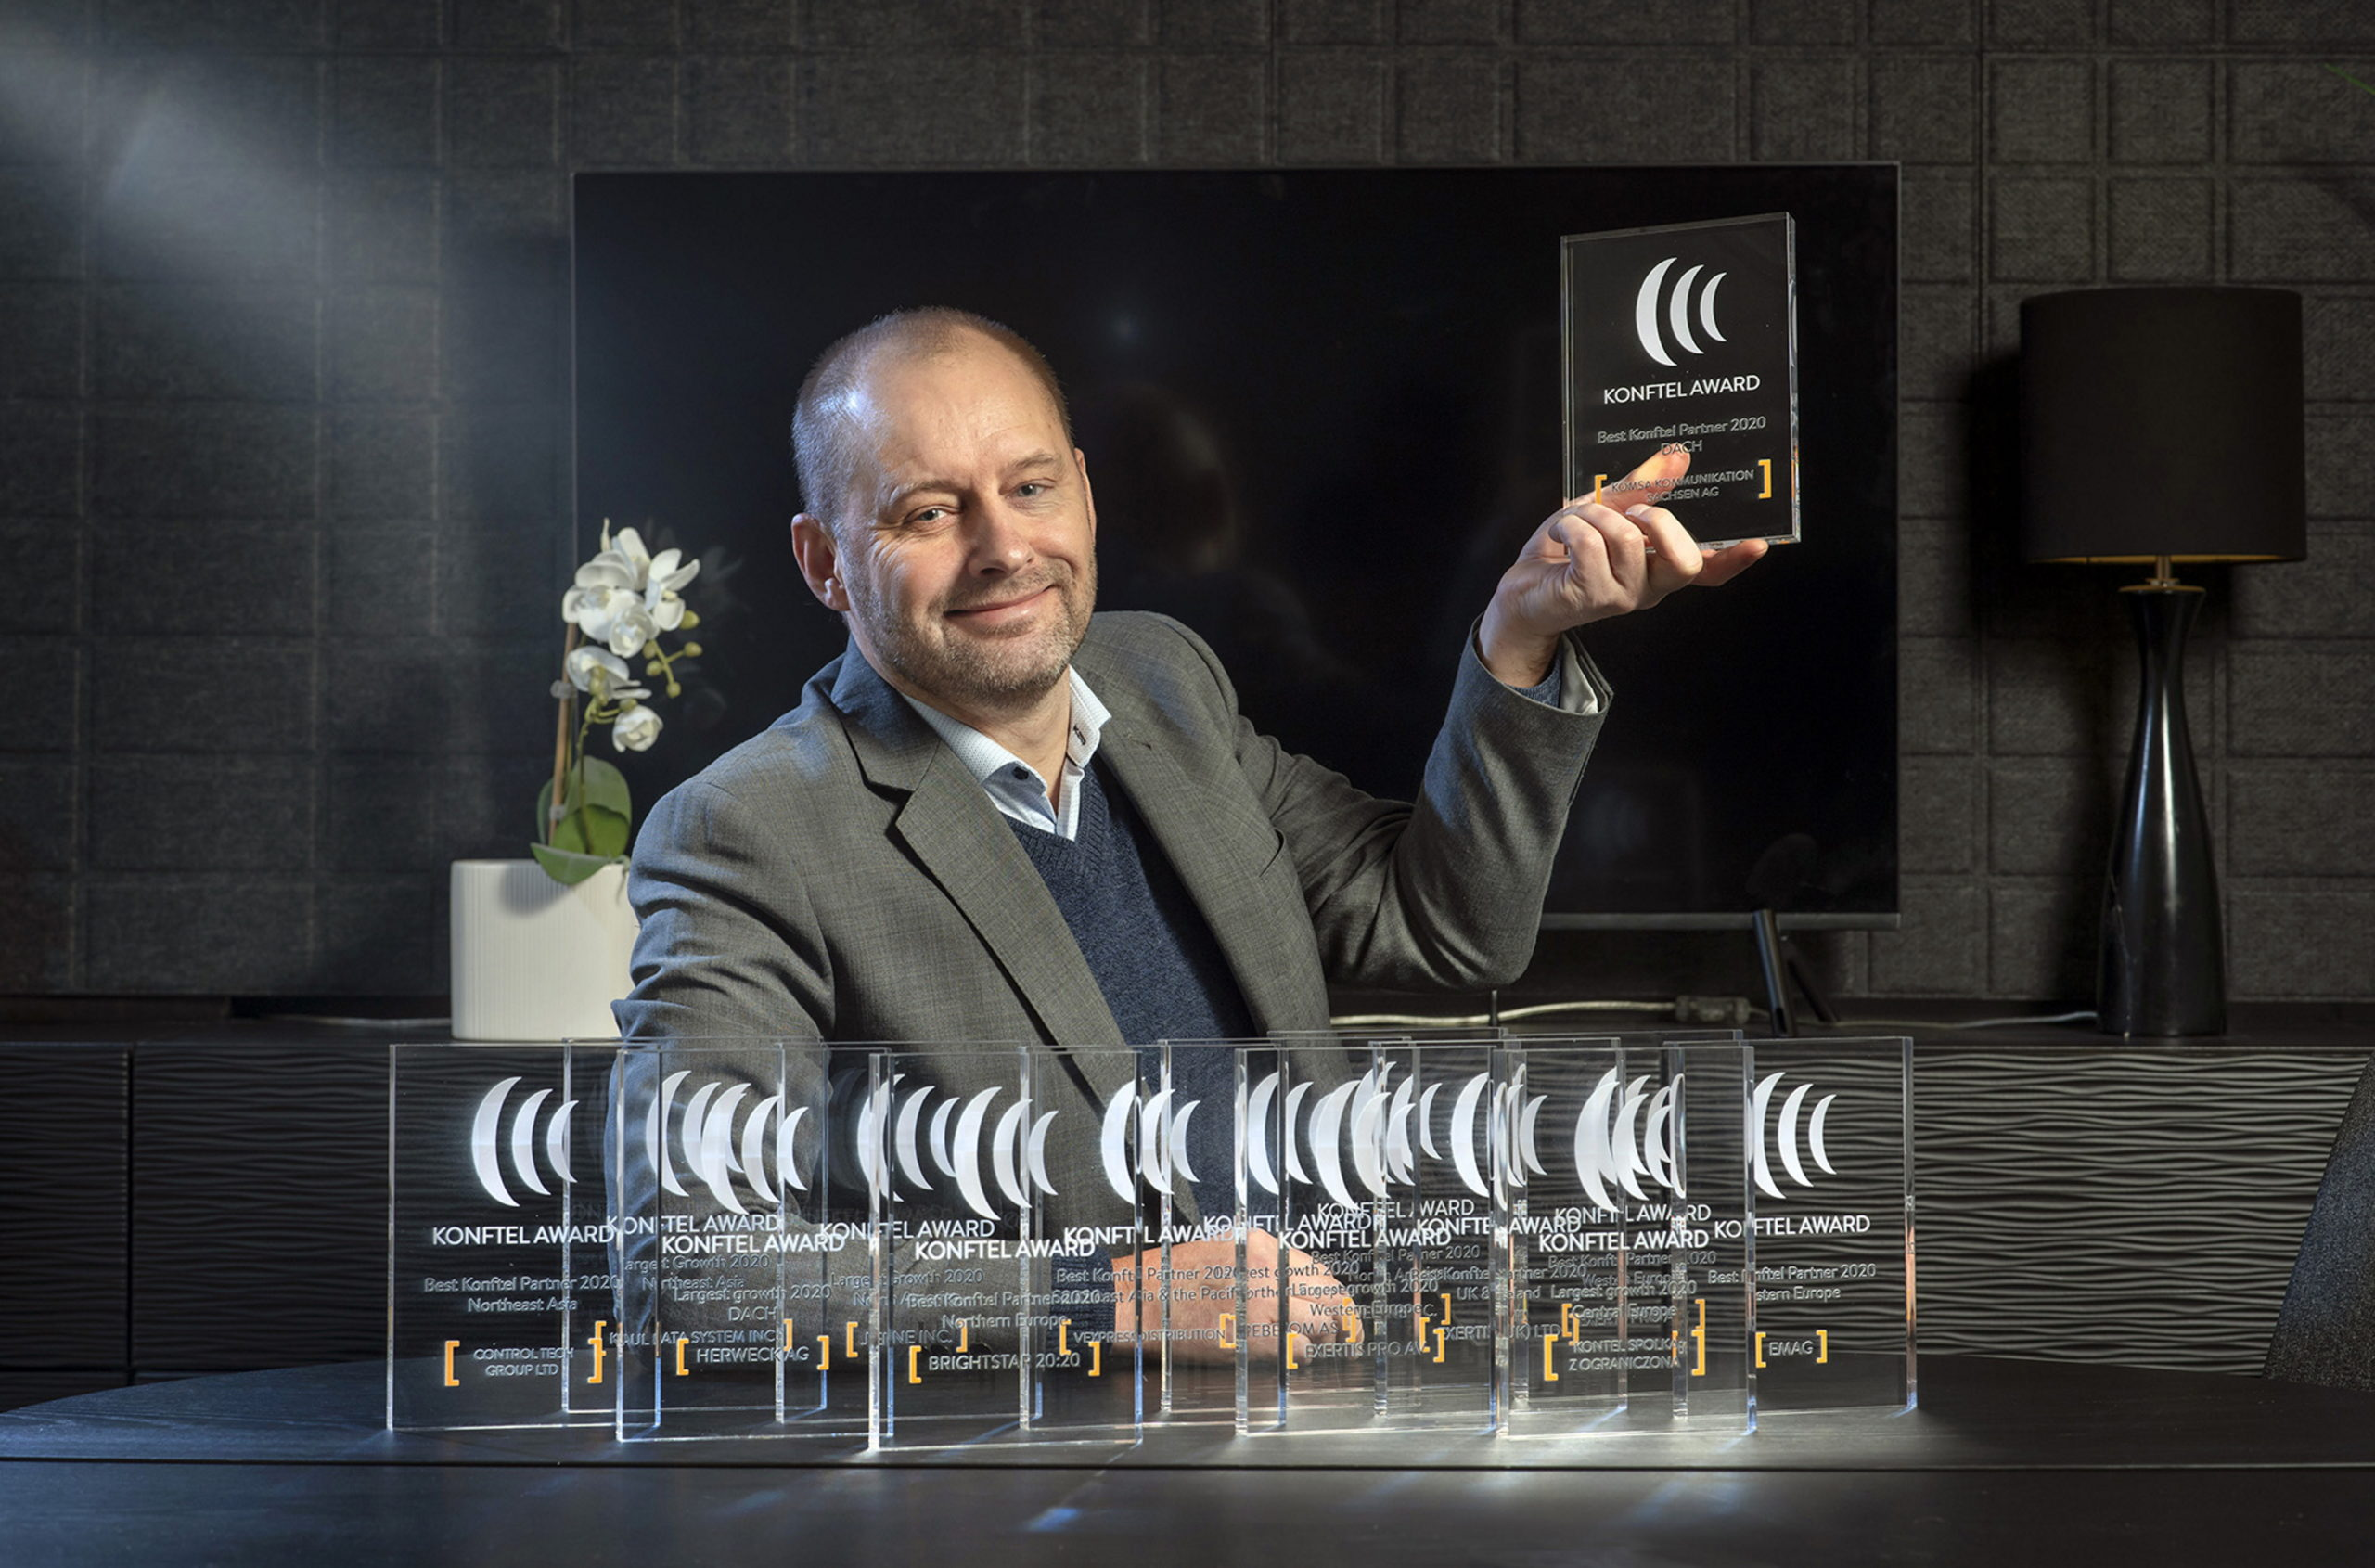 Tommy Edlund, Director of Global Sales at Konftel with the awards